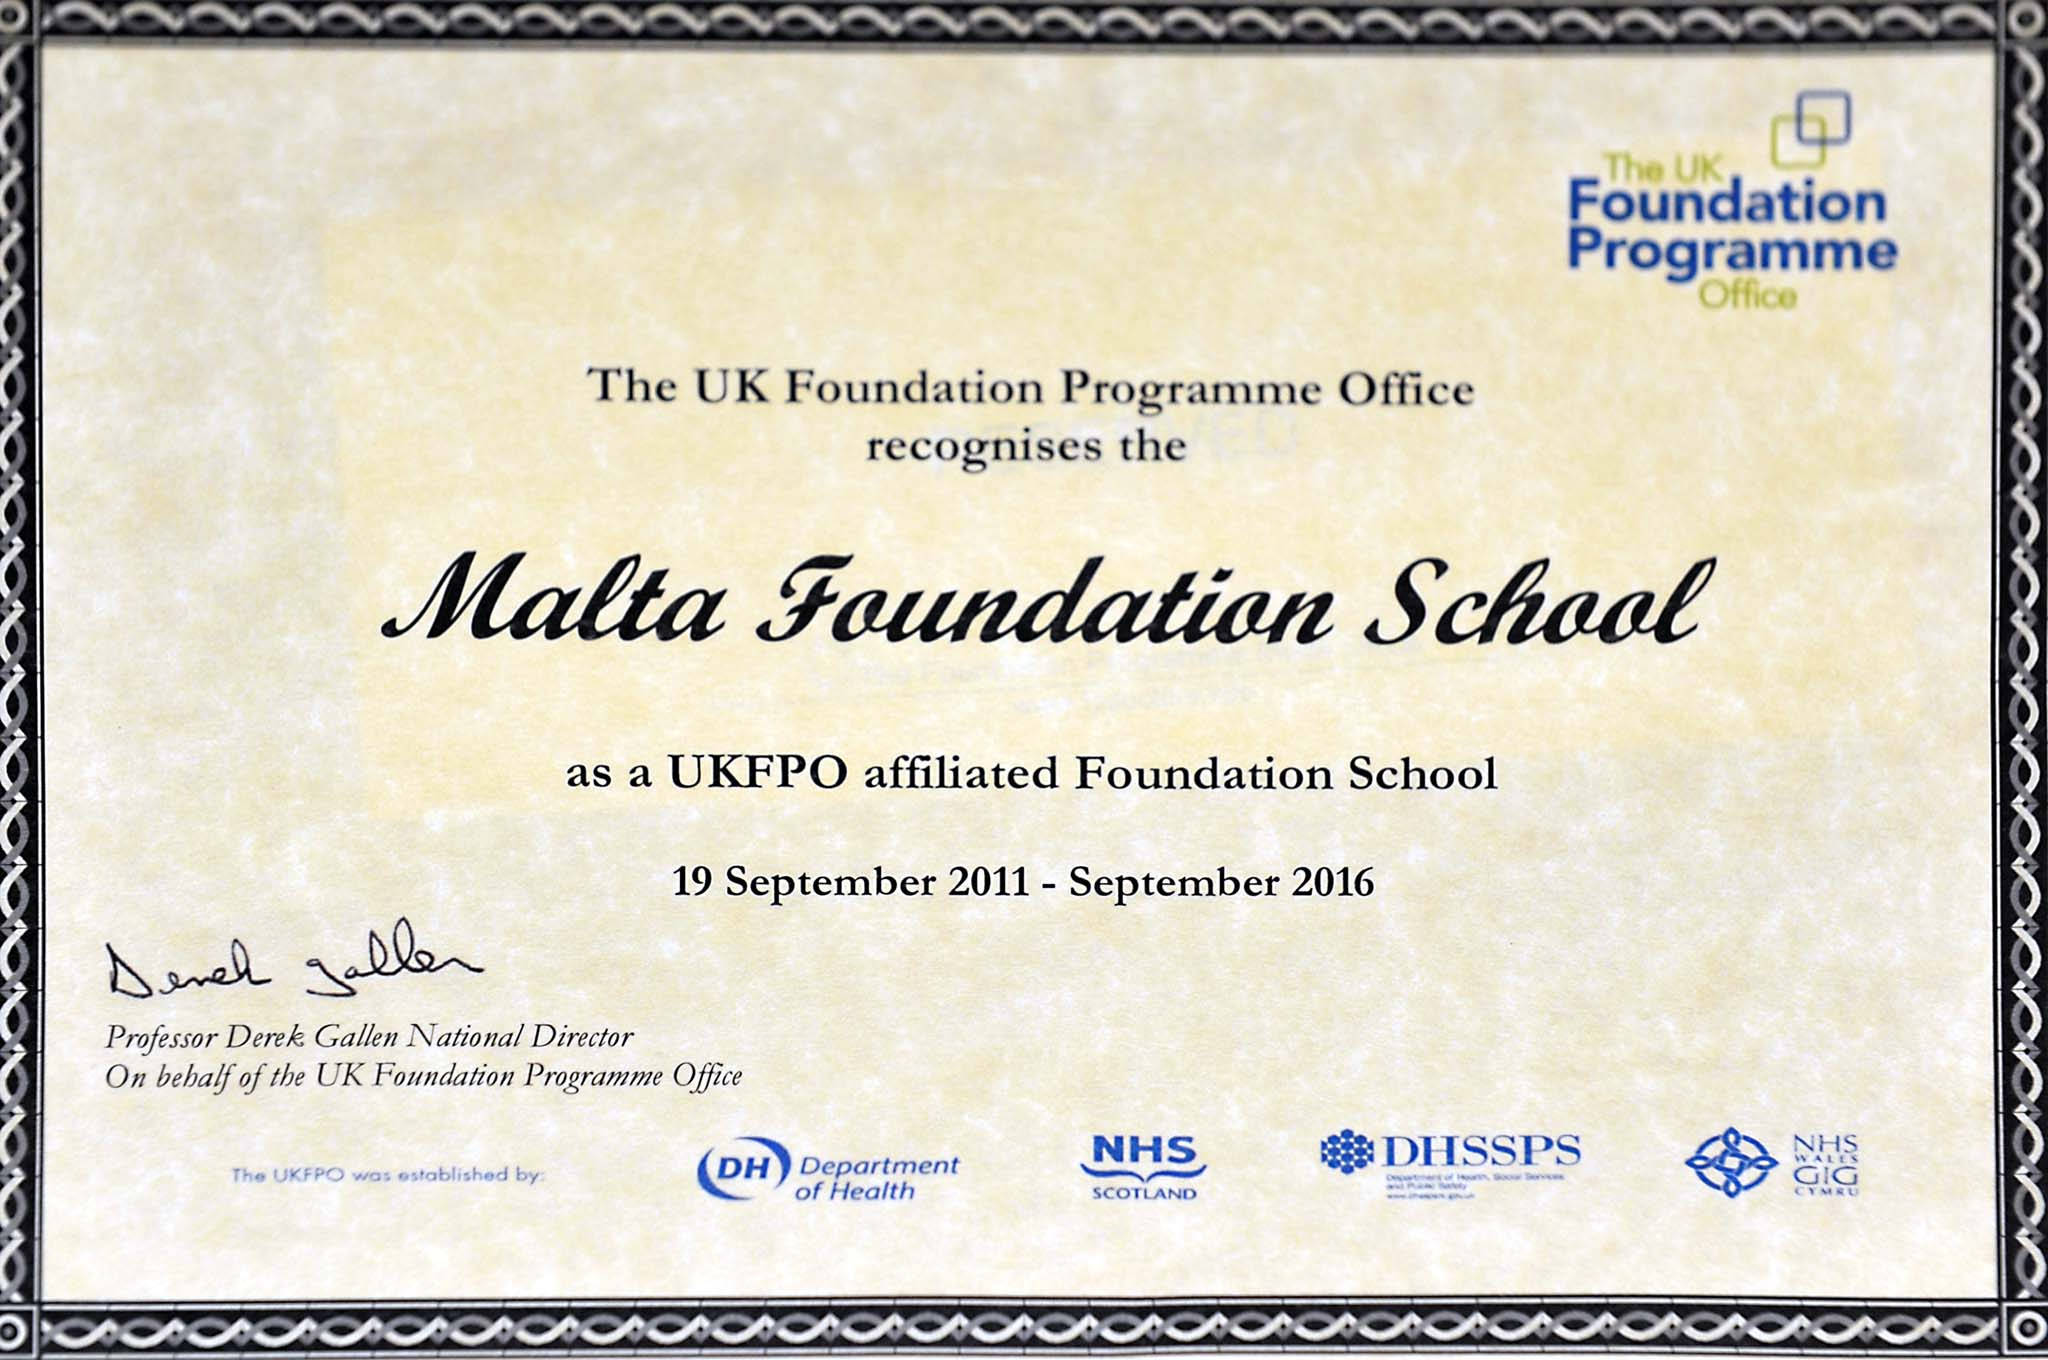 ... September 2011 For A Further 5 Years After Fulfilling The Quality  Standards Of The Medical Council Malta And The UKFPO. The Re Affiliation  Certificate ...